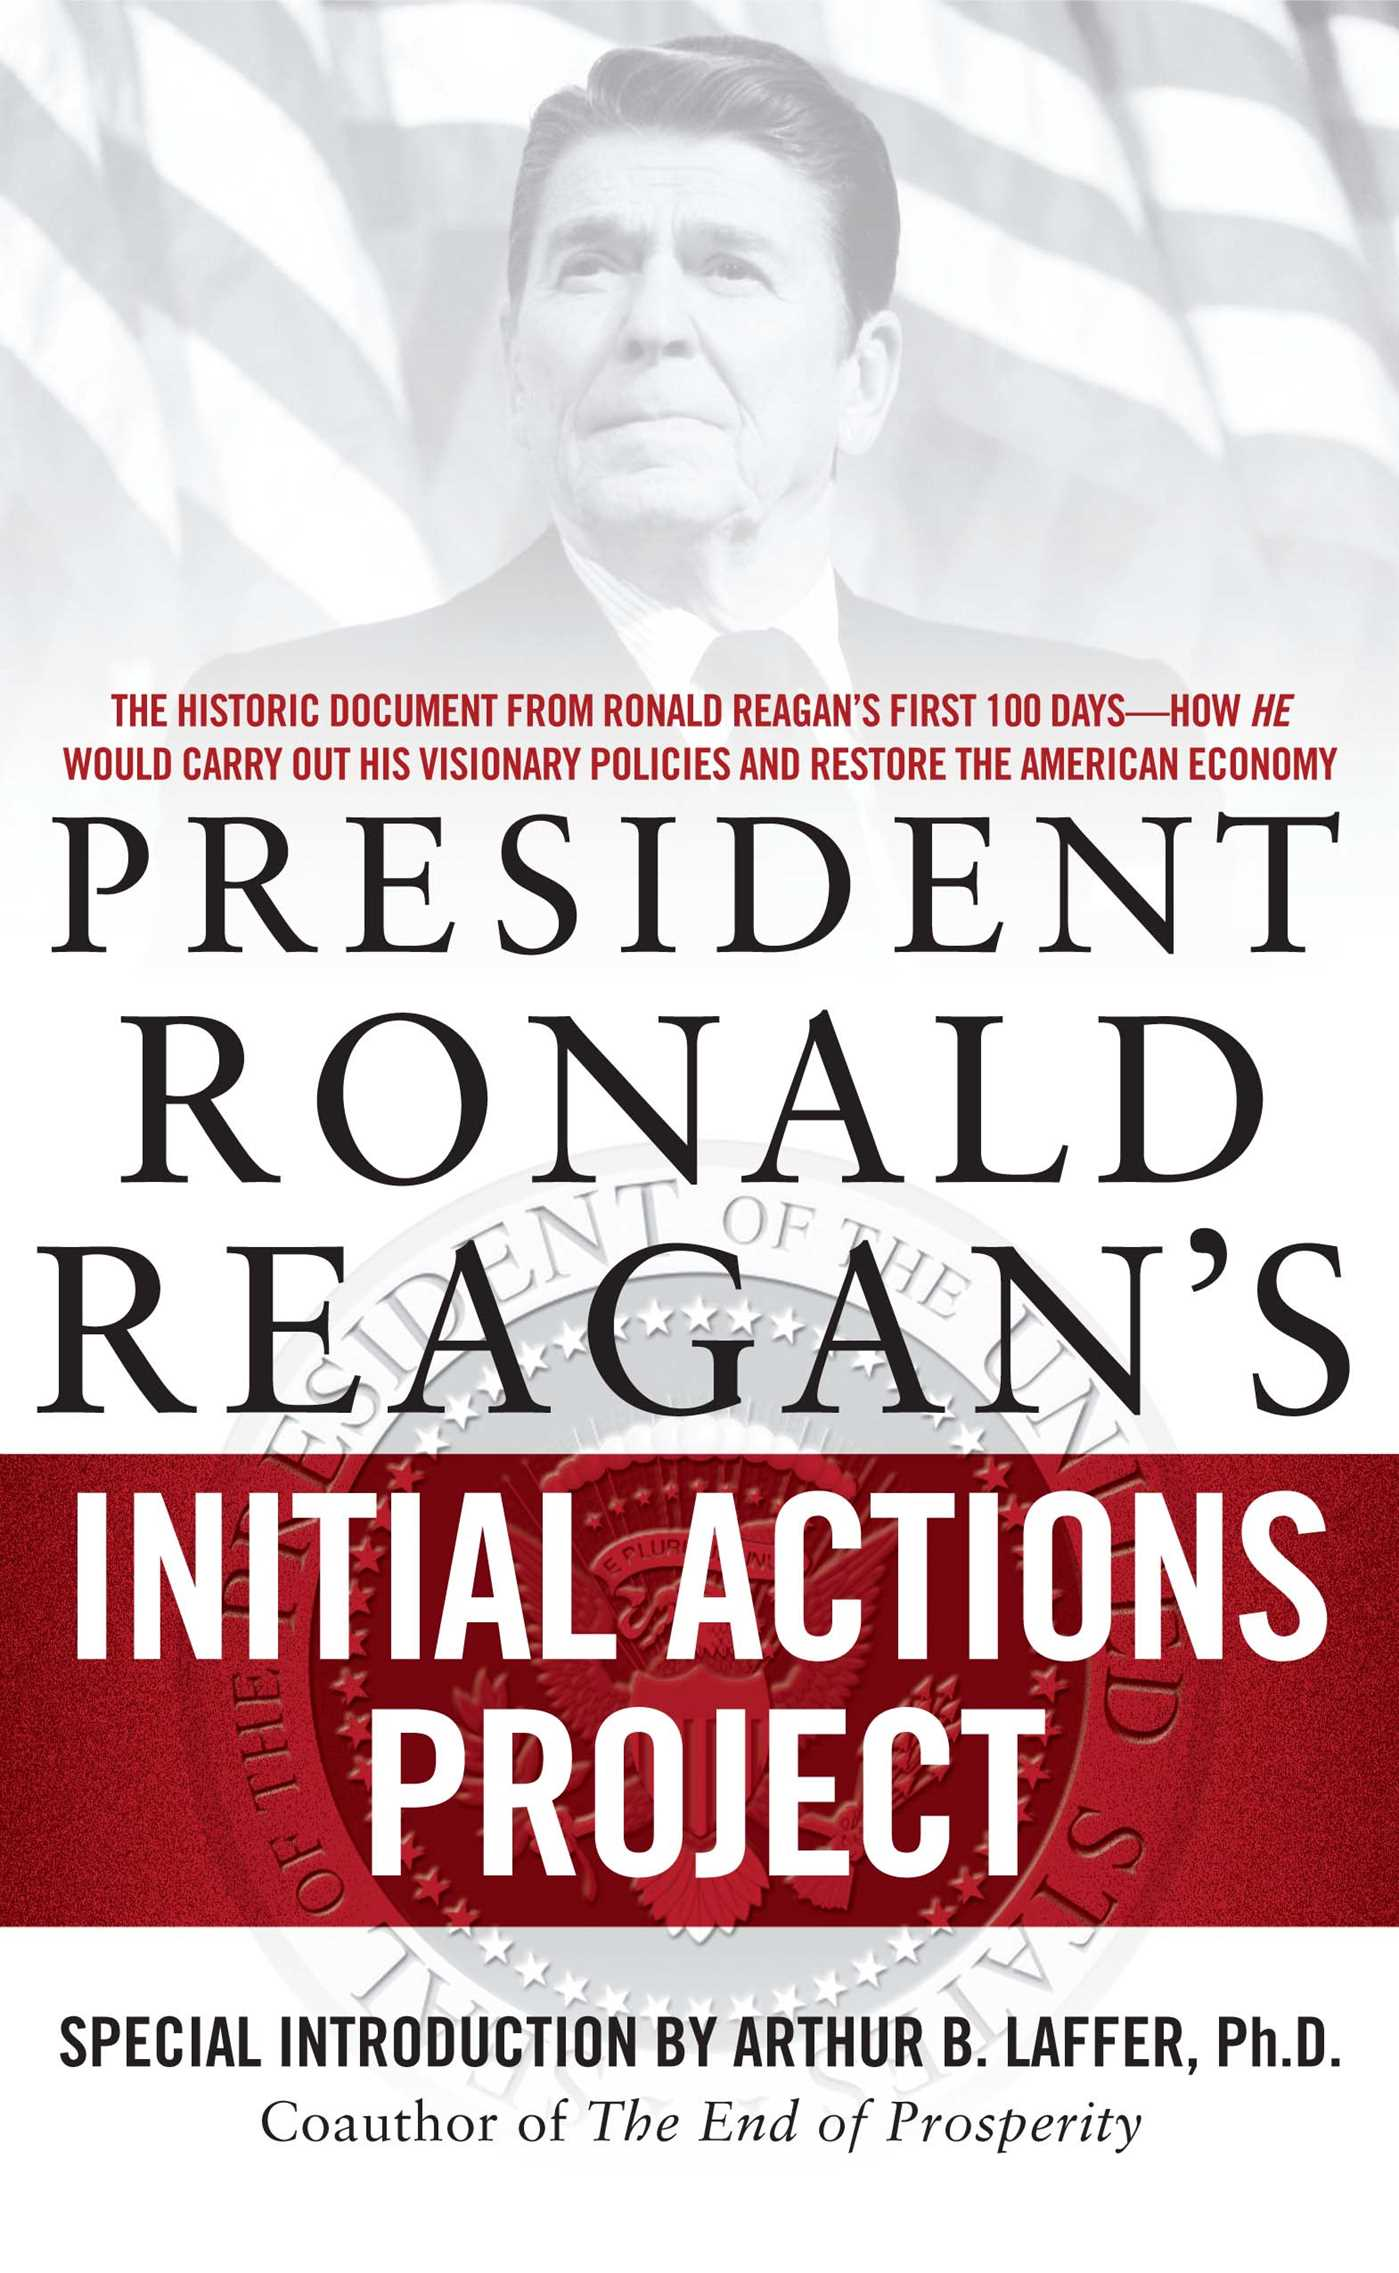 an introduction to the presidency of ronald reagan